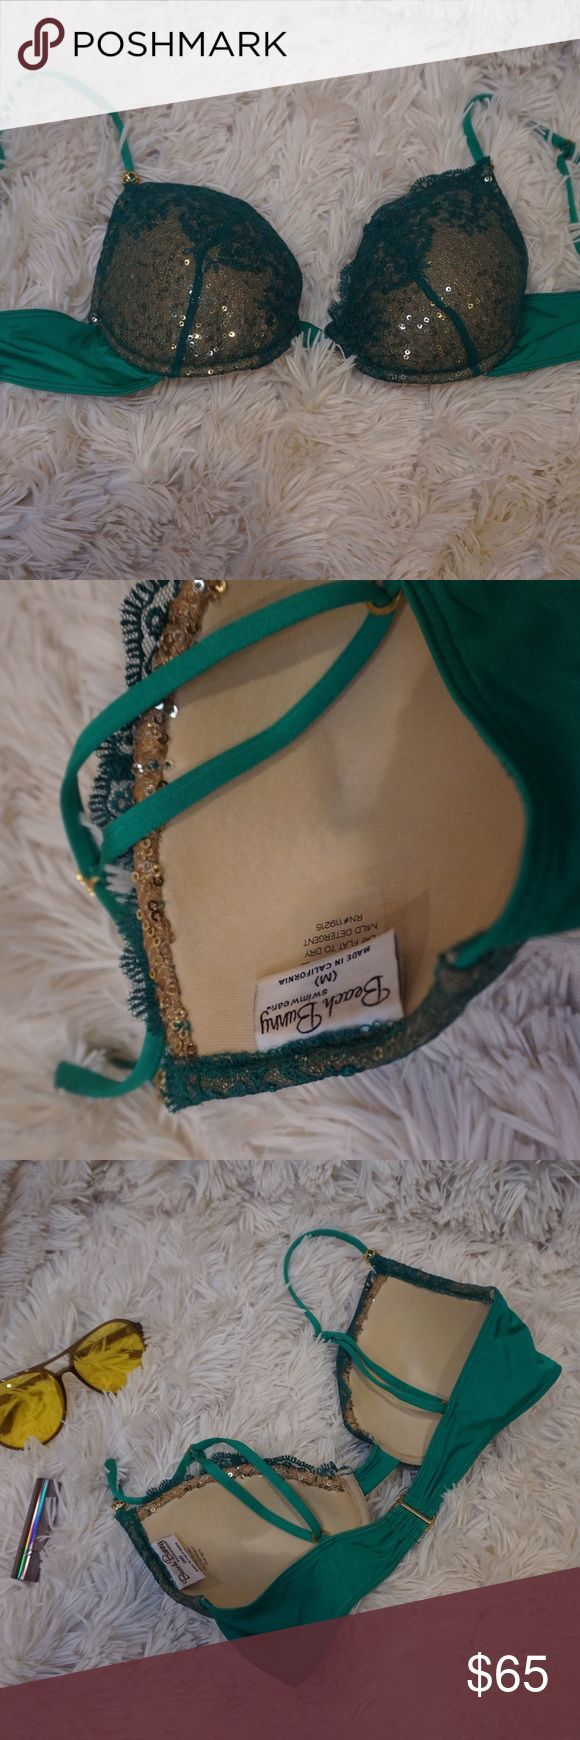 Beach Bunny Swimwear✨🐰 | Bikini Top | size M This top is super sexy & fun! Beautiful green and lace detailing. Adjustable straps with a gold bead on each strap. Fun for a Vegas pool party or maybe a Rave ? Only worn once- my bust is a 34C for reference and it fits perfect ⚡️✌🏼 Beach Bunny Swim Bikinis